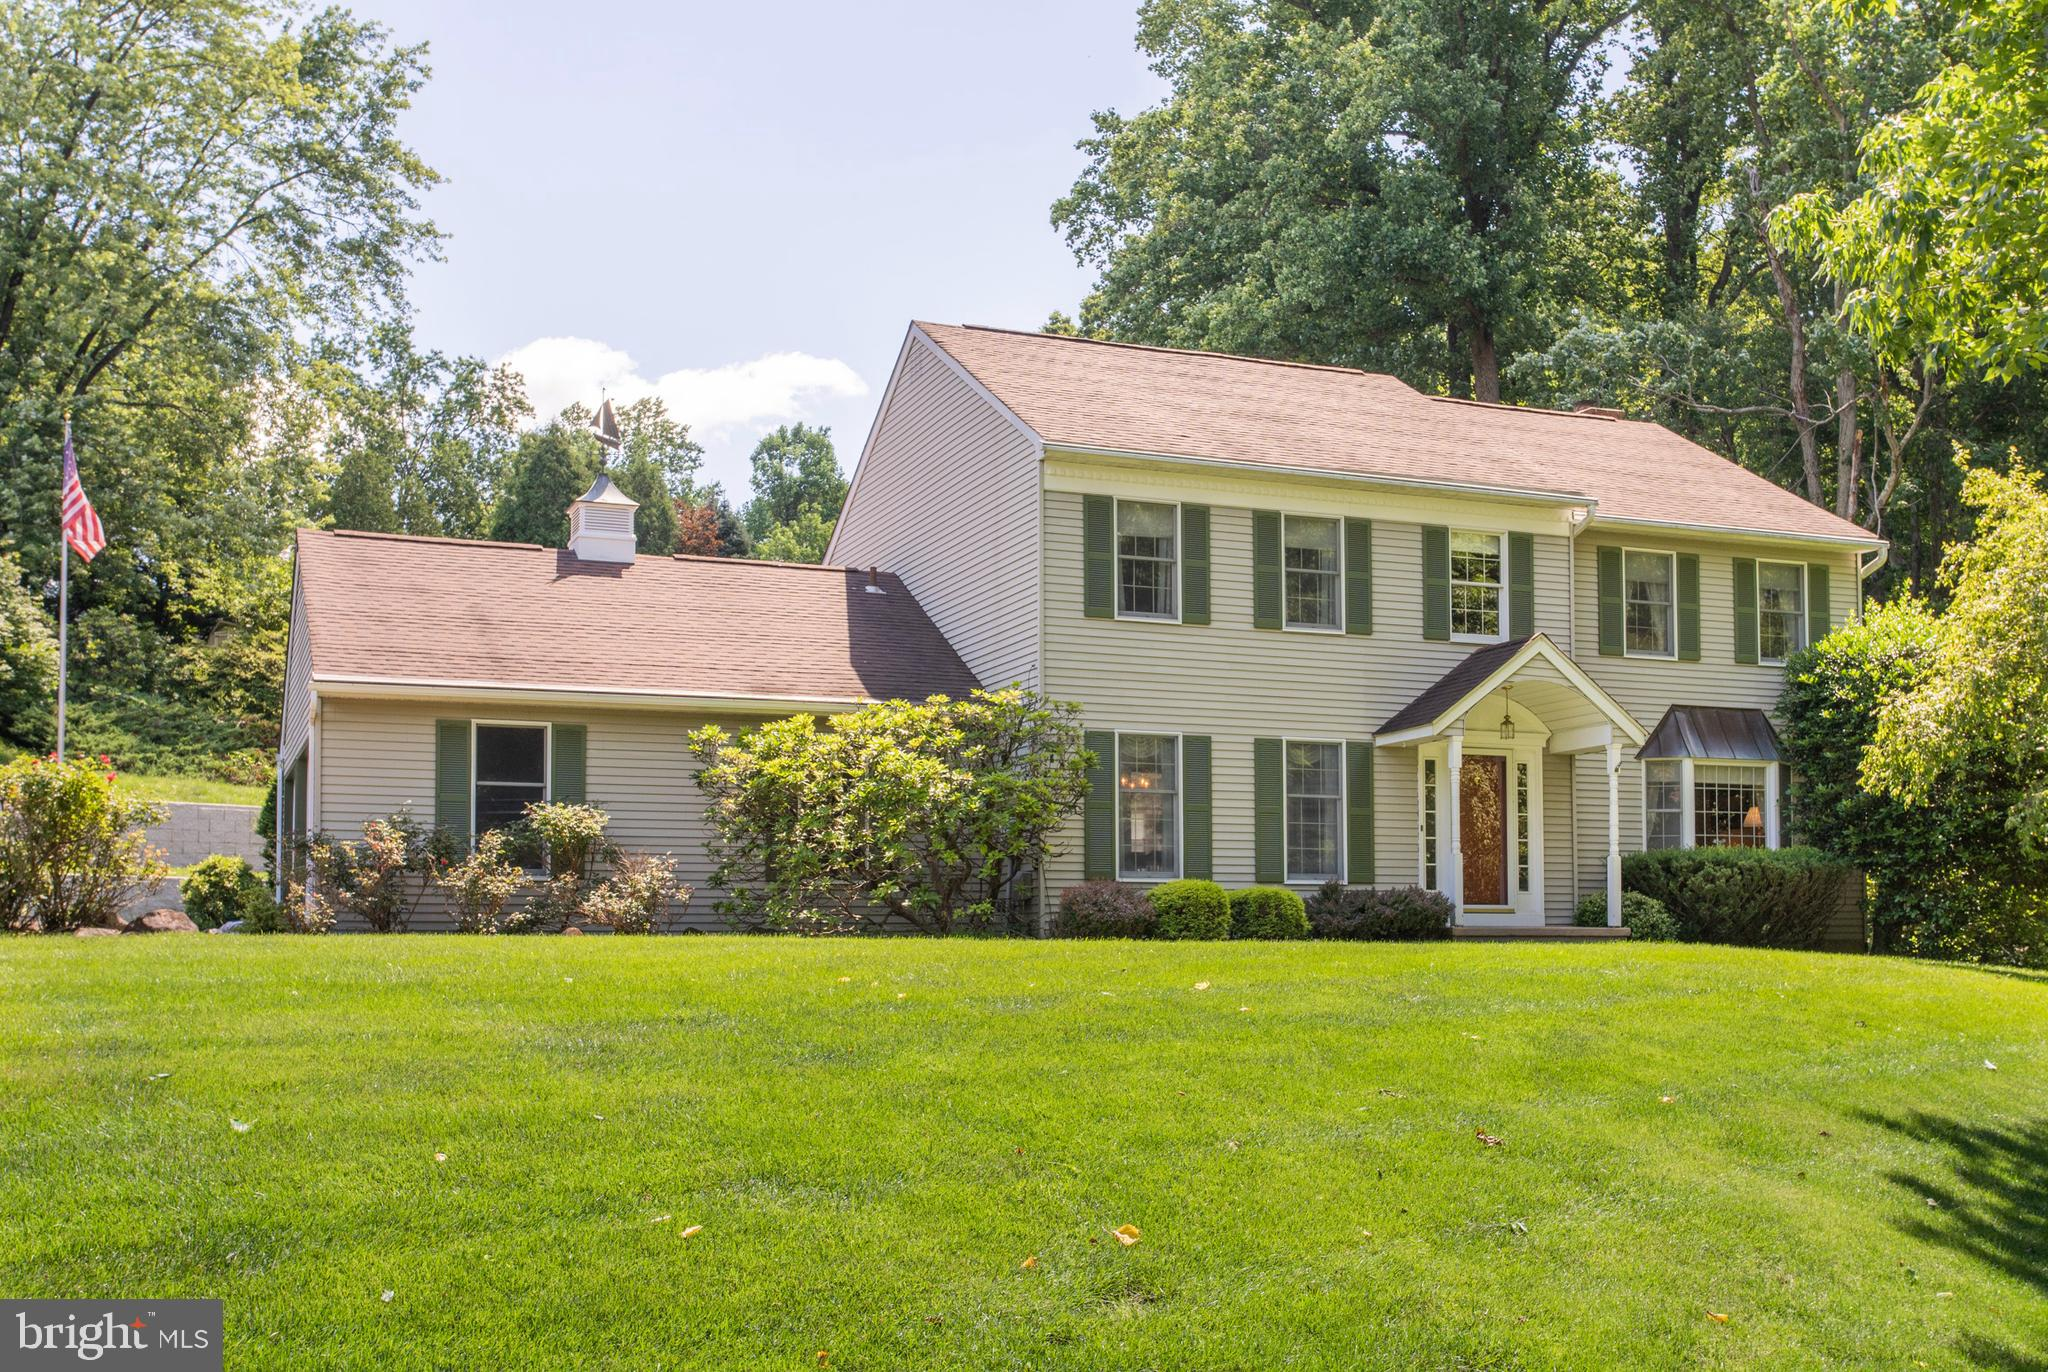 """Welcome to 154 Poplar Road! Located on a quiet cul-de-sac in the much-desired Newtown Woods area of Newtown Square and perched majestically atop a beautifully maintained front lawn, surrounded by mature trees, shrubs, and gardens, it will be love at first sight! Walking through the front door and into the formal foyer, you will immediately be struck by the bright, open feel of the home. The living room, with an expansive bay window, is just waiting for your guests to arrive. Next notice the large, lovely dining room, which is perfectly designed for entertaining. The kitchen is light and airy with a bonus island for extra counter space. The openness of the connected breakfast area leading to a warm cozy family room makes this house stand out. Notice the words painted on the beam to show the love that has been in this home. With a working propane fireplace, built in bookshelves, and French doors to the deck, this will be the room you will settle in at the end of the day. Completing the first floor are the mudroom/laundry room, which are perfectly situated off of the kitchen, leading to the 2-car attached garage. Upstairs, the master bedroom is your first stop. Bright and warm, this room offers a huge walk-in closet with a laundry chute down to the laundry room! What a bonus!! The large full bath completes your master suite. Down the hall you will find 3 other full-sized bedrooms, and an extra-large hall bath - all generously flooded with light. The basement is dry and clean with a French drain, bar, workbench, and a """"cold cellar"""" for storage. The high ceilings and large footprint are just begging to be turned into something spectacular! Step outside to grounds that have been lovingly and meticulously maintained for many years, with plenty of grassy areas for play and entertaining, and a stream to dip your toes in. You will notice right away the enormous and extensive hardscaping of the retaining walls with three different levels, each boasting its own special charm. T"""